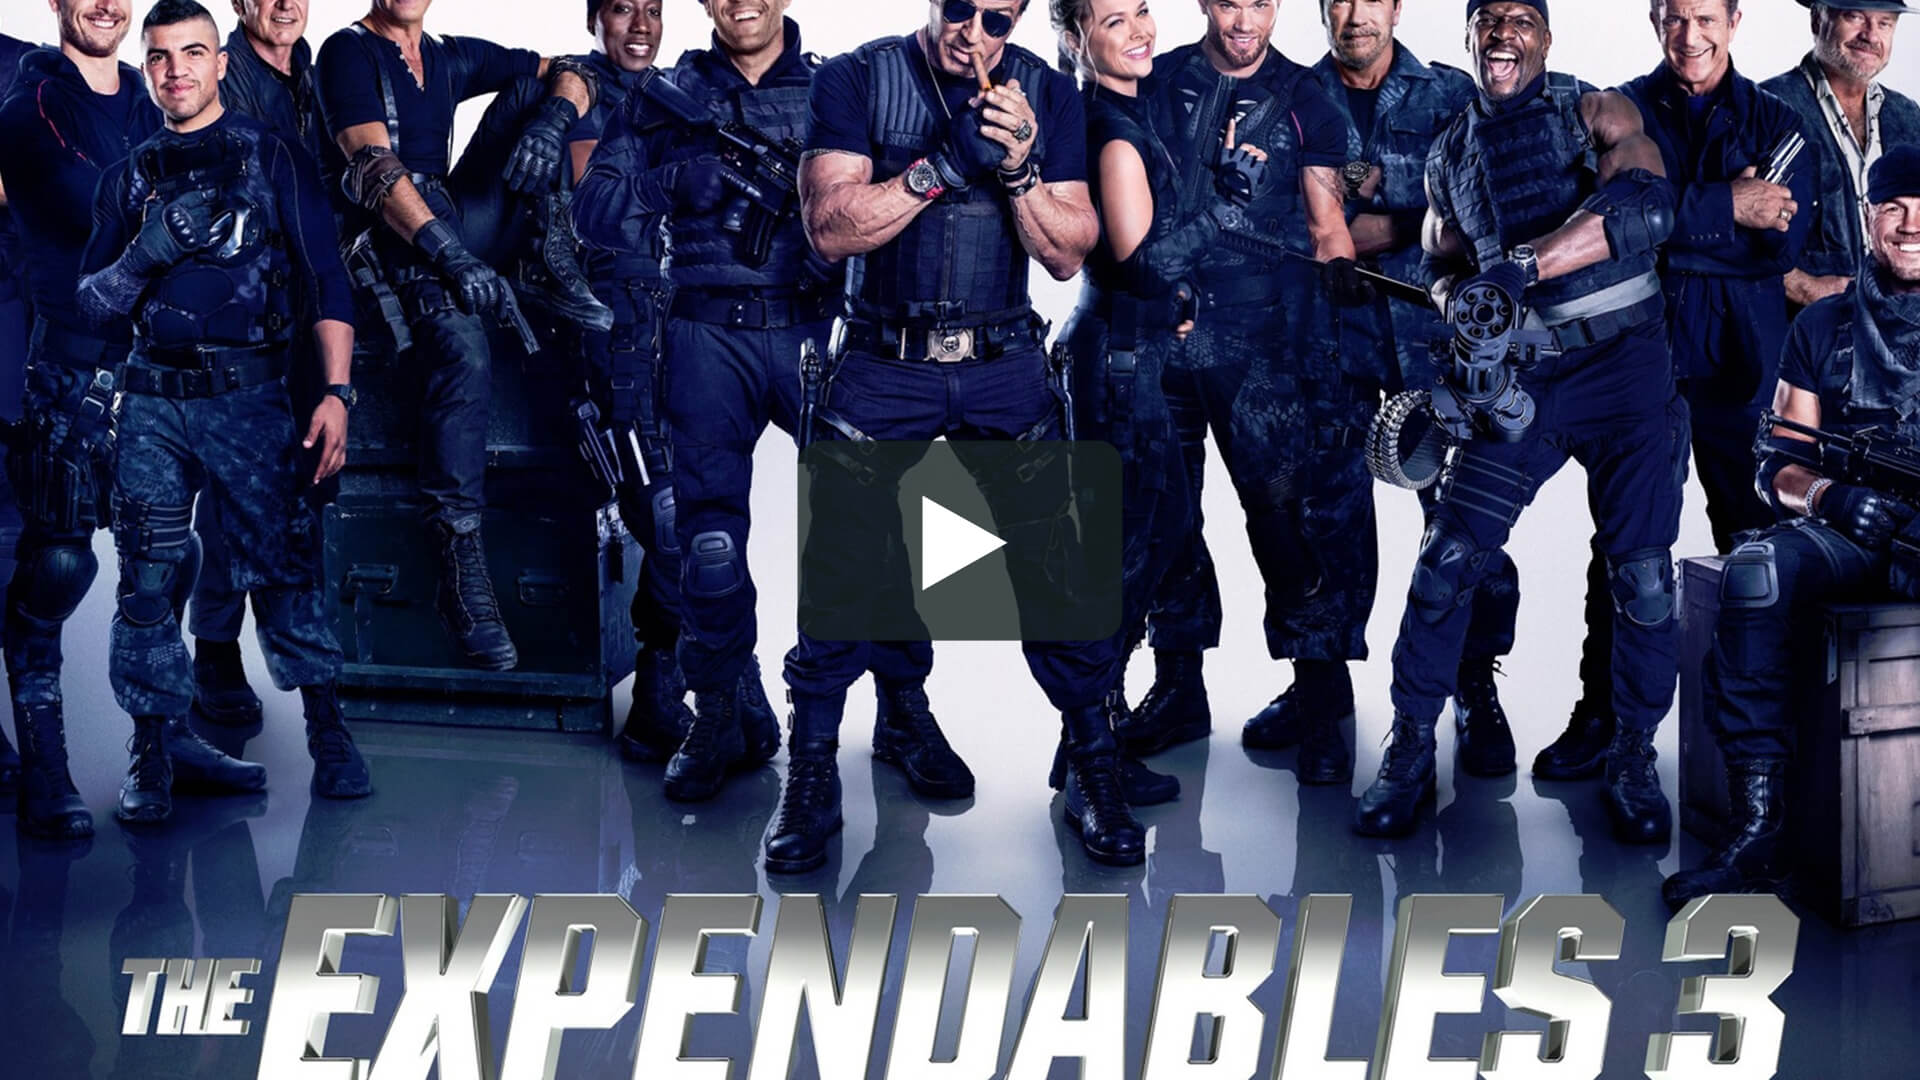 The Expendables 3 - 敢死隊3